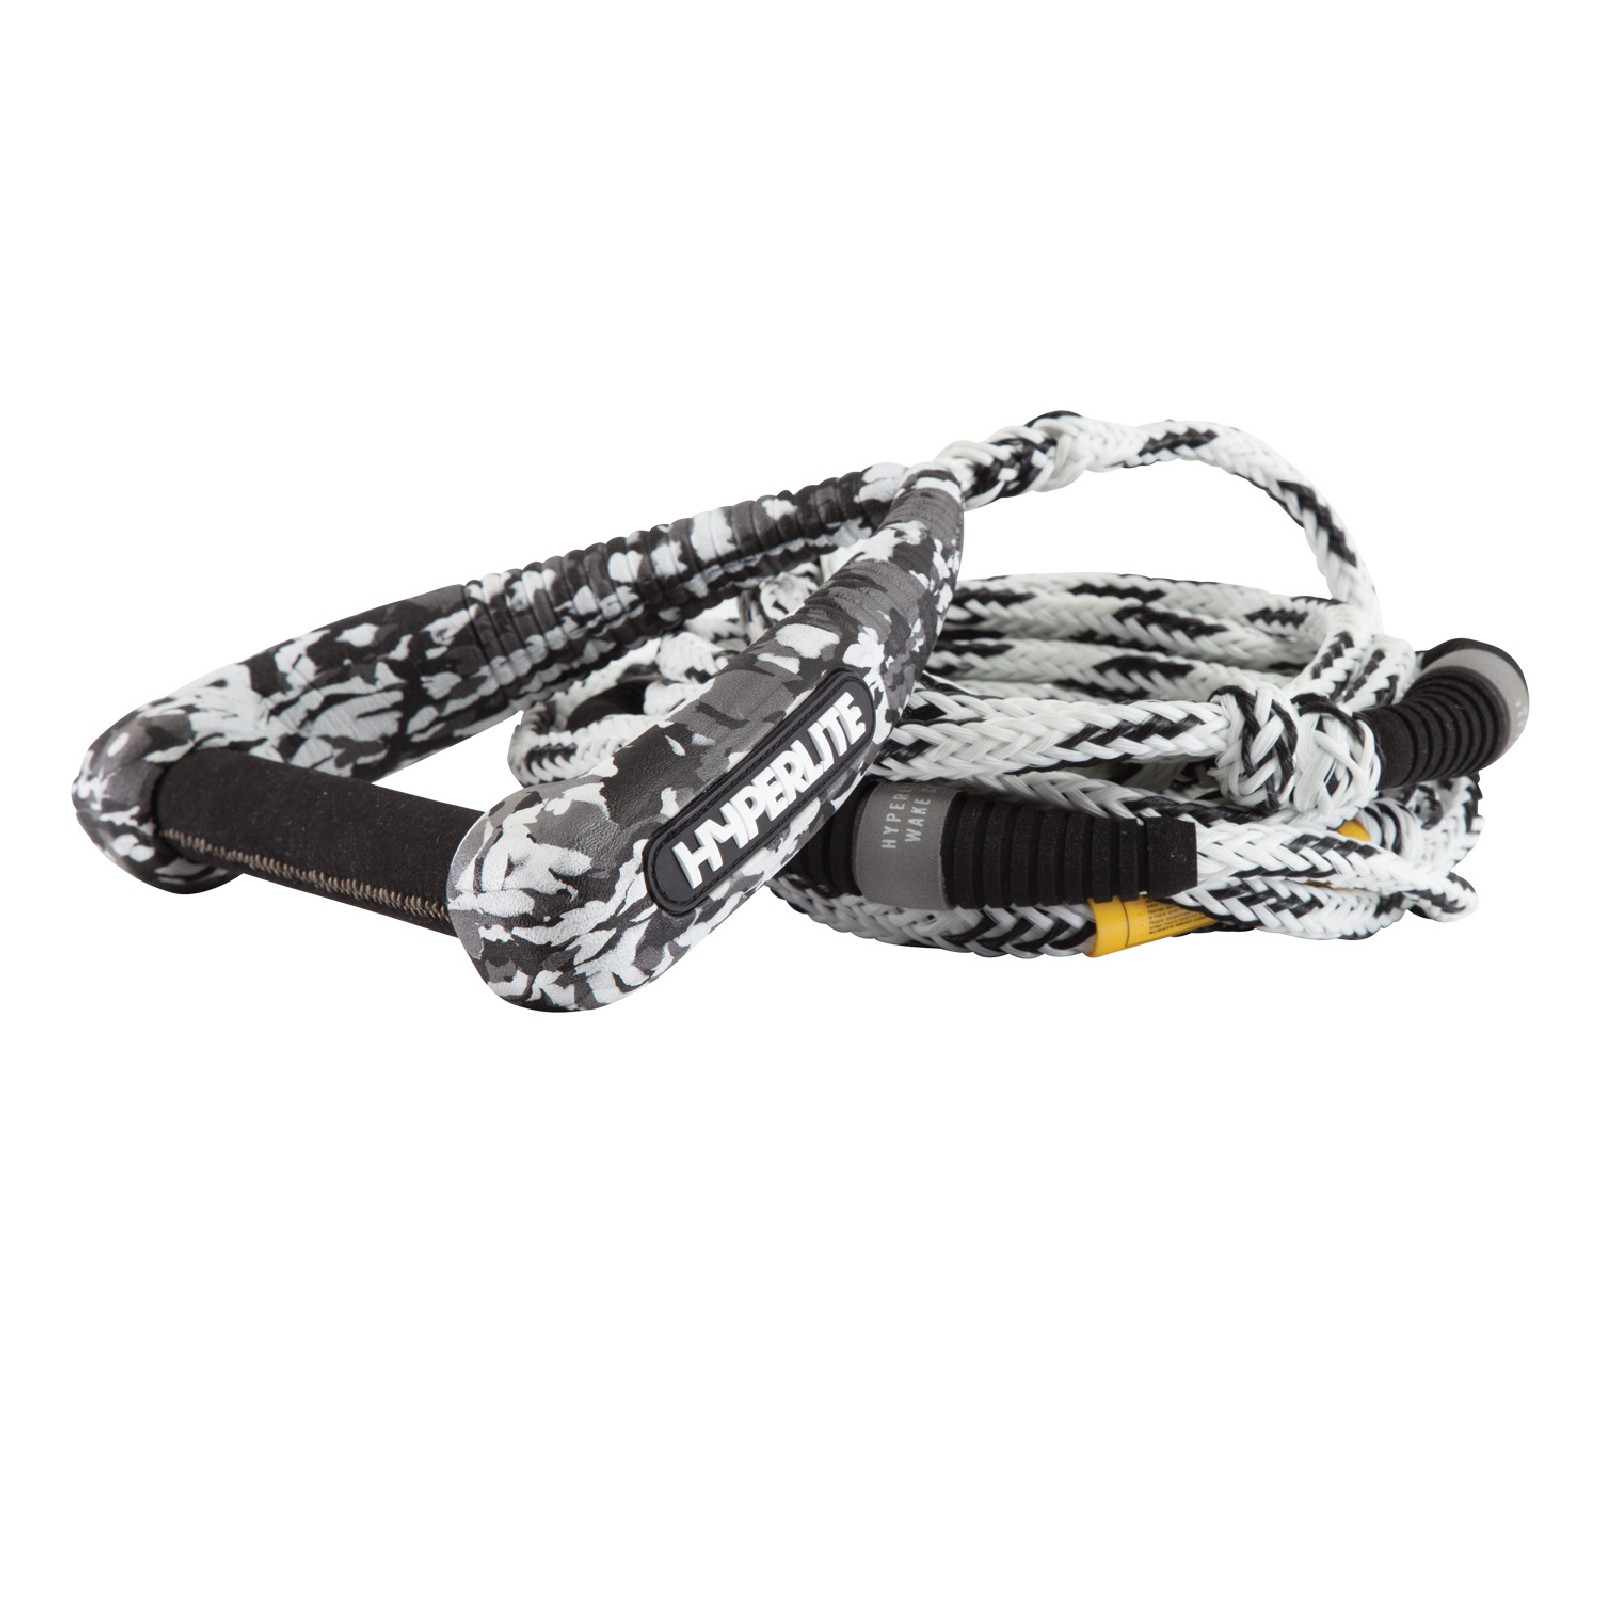 25' RIOT SURF ROPE W/HANDLE PACKAGE - MULTI HYPERLITE 2019